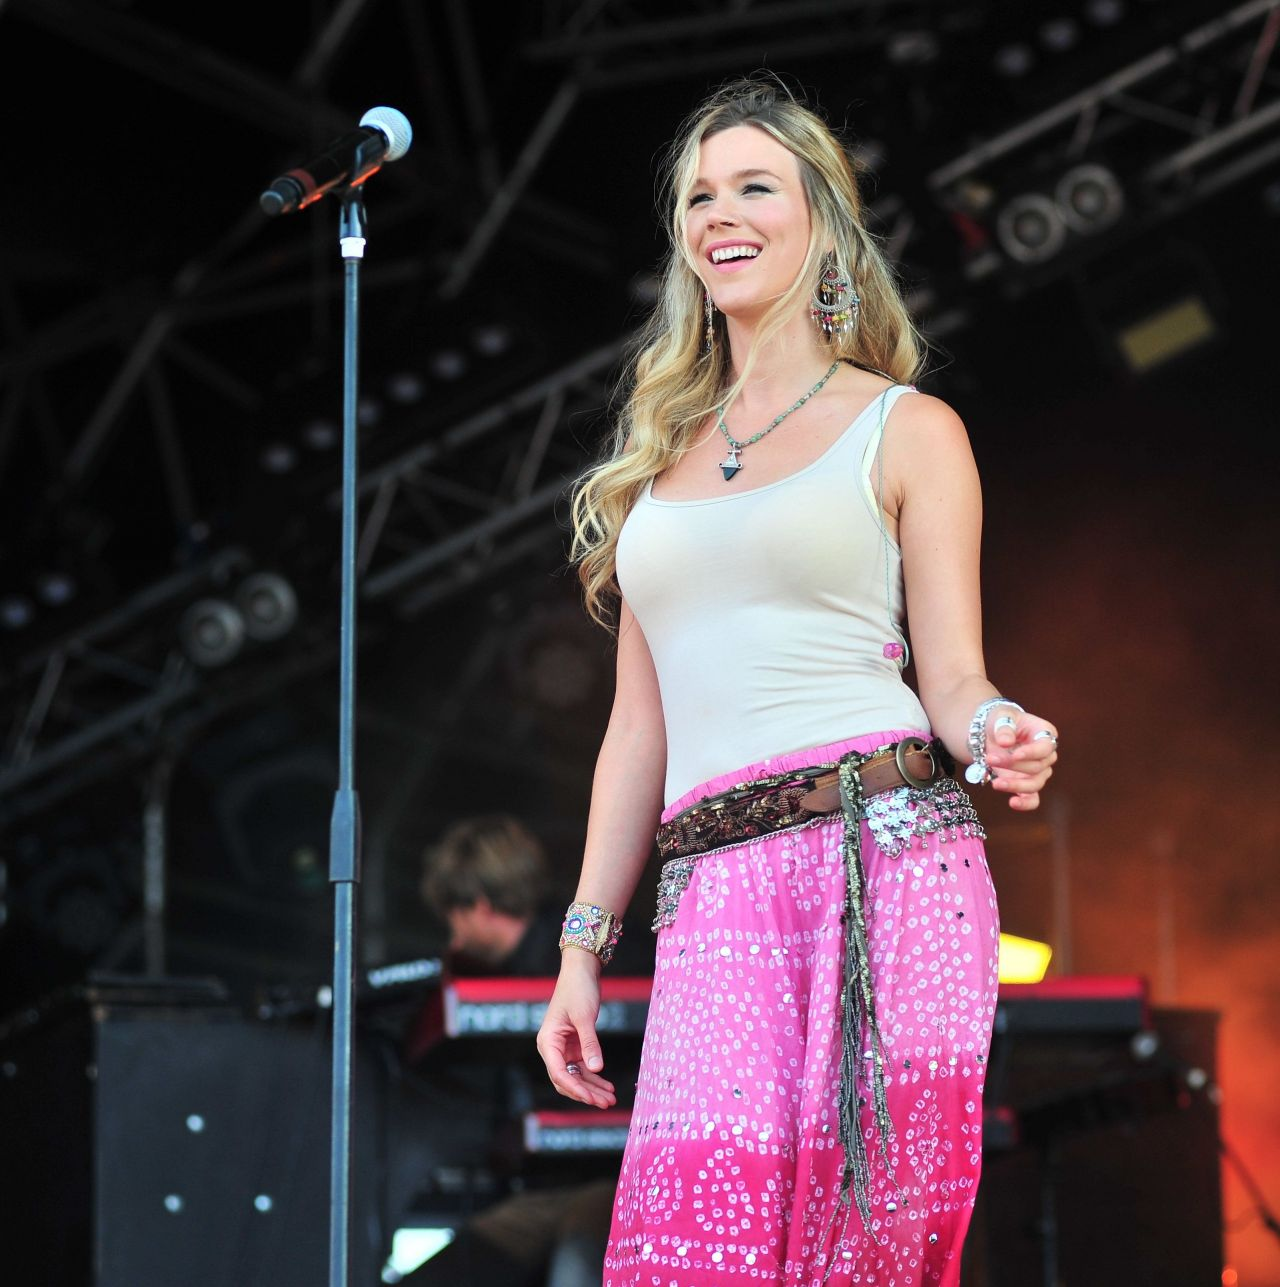 Joss Stone - Performing at CarFest North in Cheshire ...